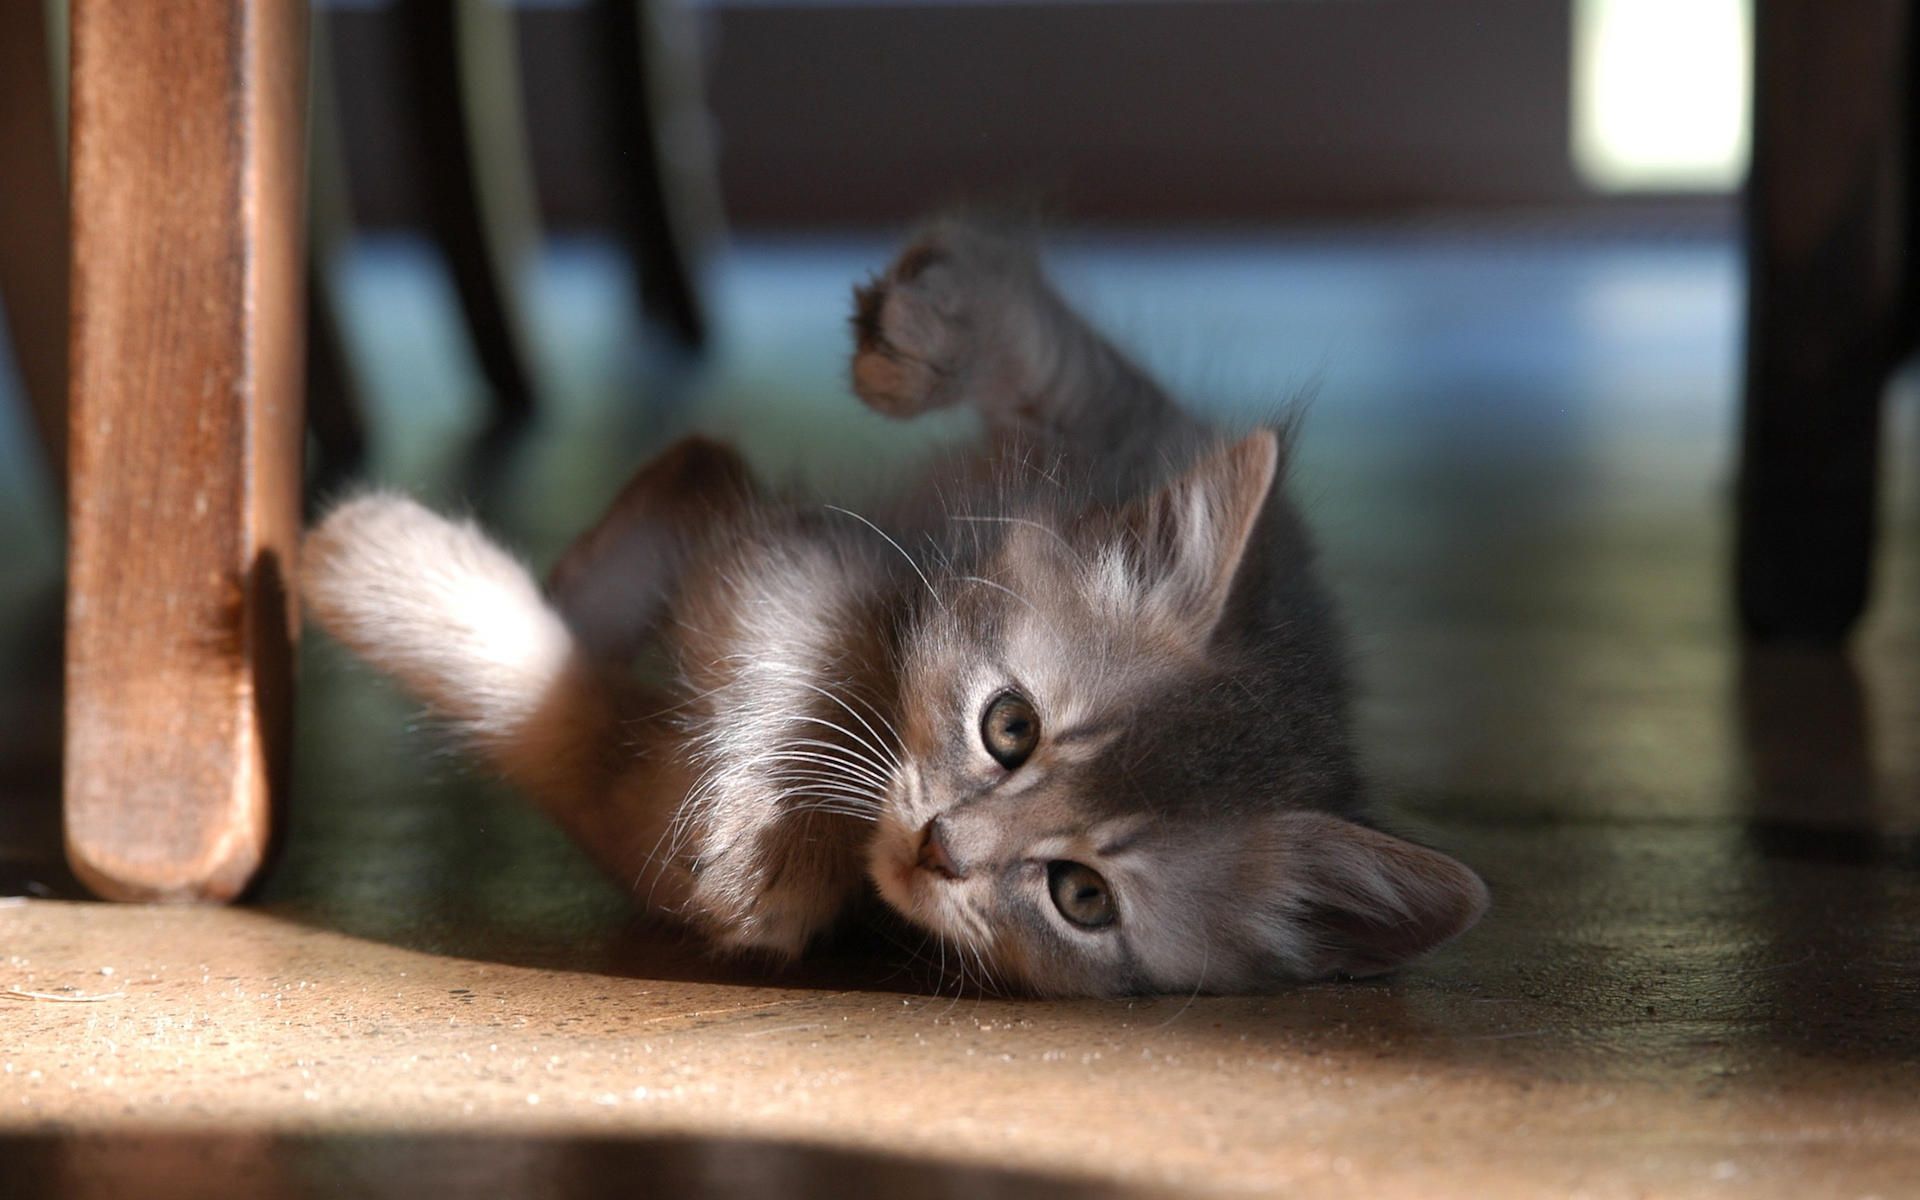 Baby Animal Wallpapers 34418 1920x1200 px HDWallSourcecom 1920x1200